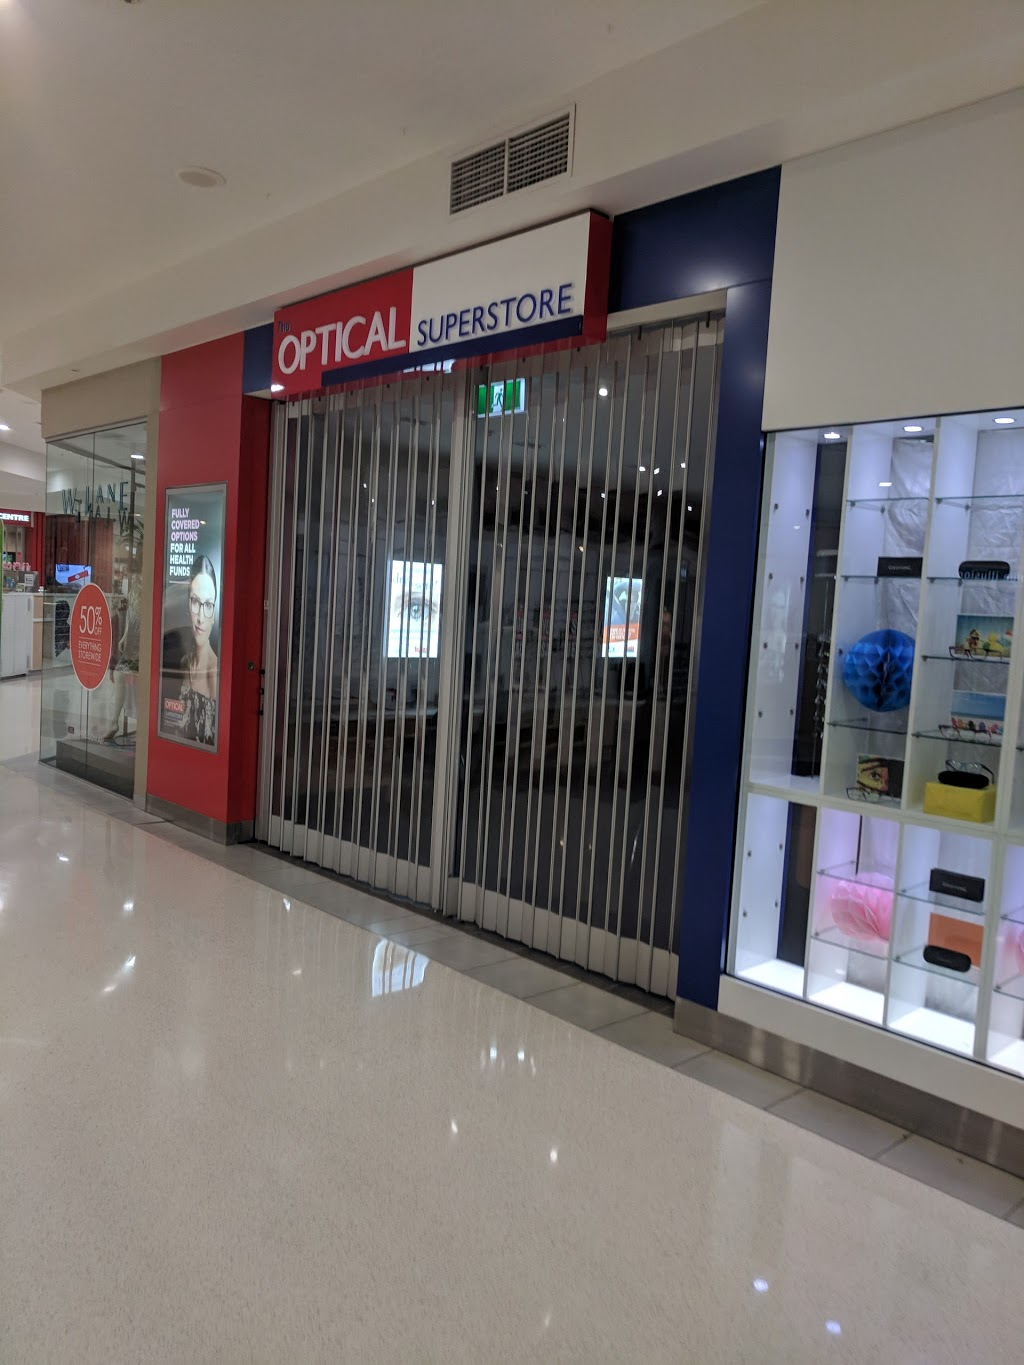 The Optical Superstore | store | Castletown Shopping Centre, 26, Hyde Park QLD 4812, Australia | 0747241961 OR +61 7 4724 1961